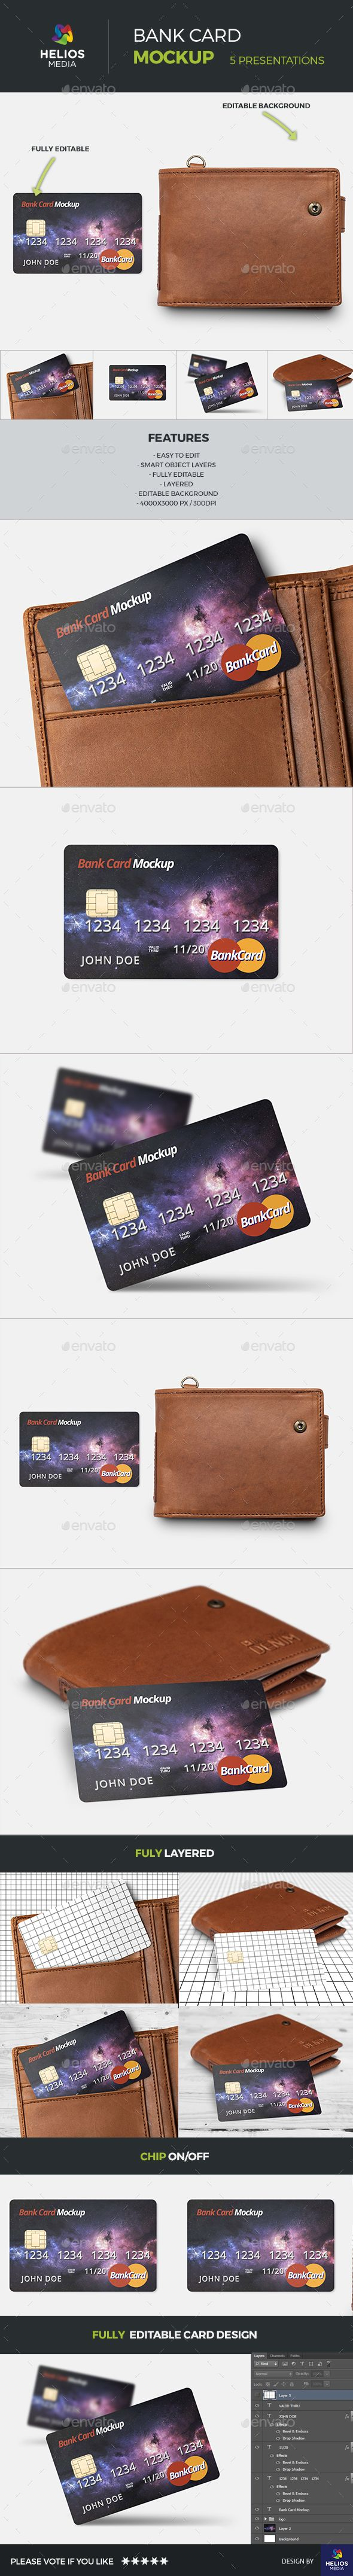 Credit card bank mockup mockup business cards and font logo credit card bank mockup colourmoves